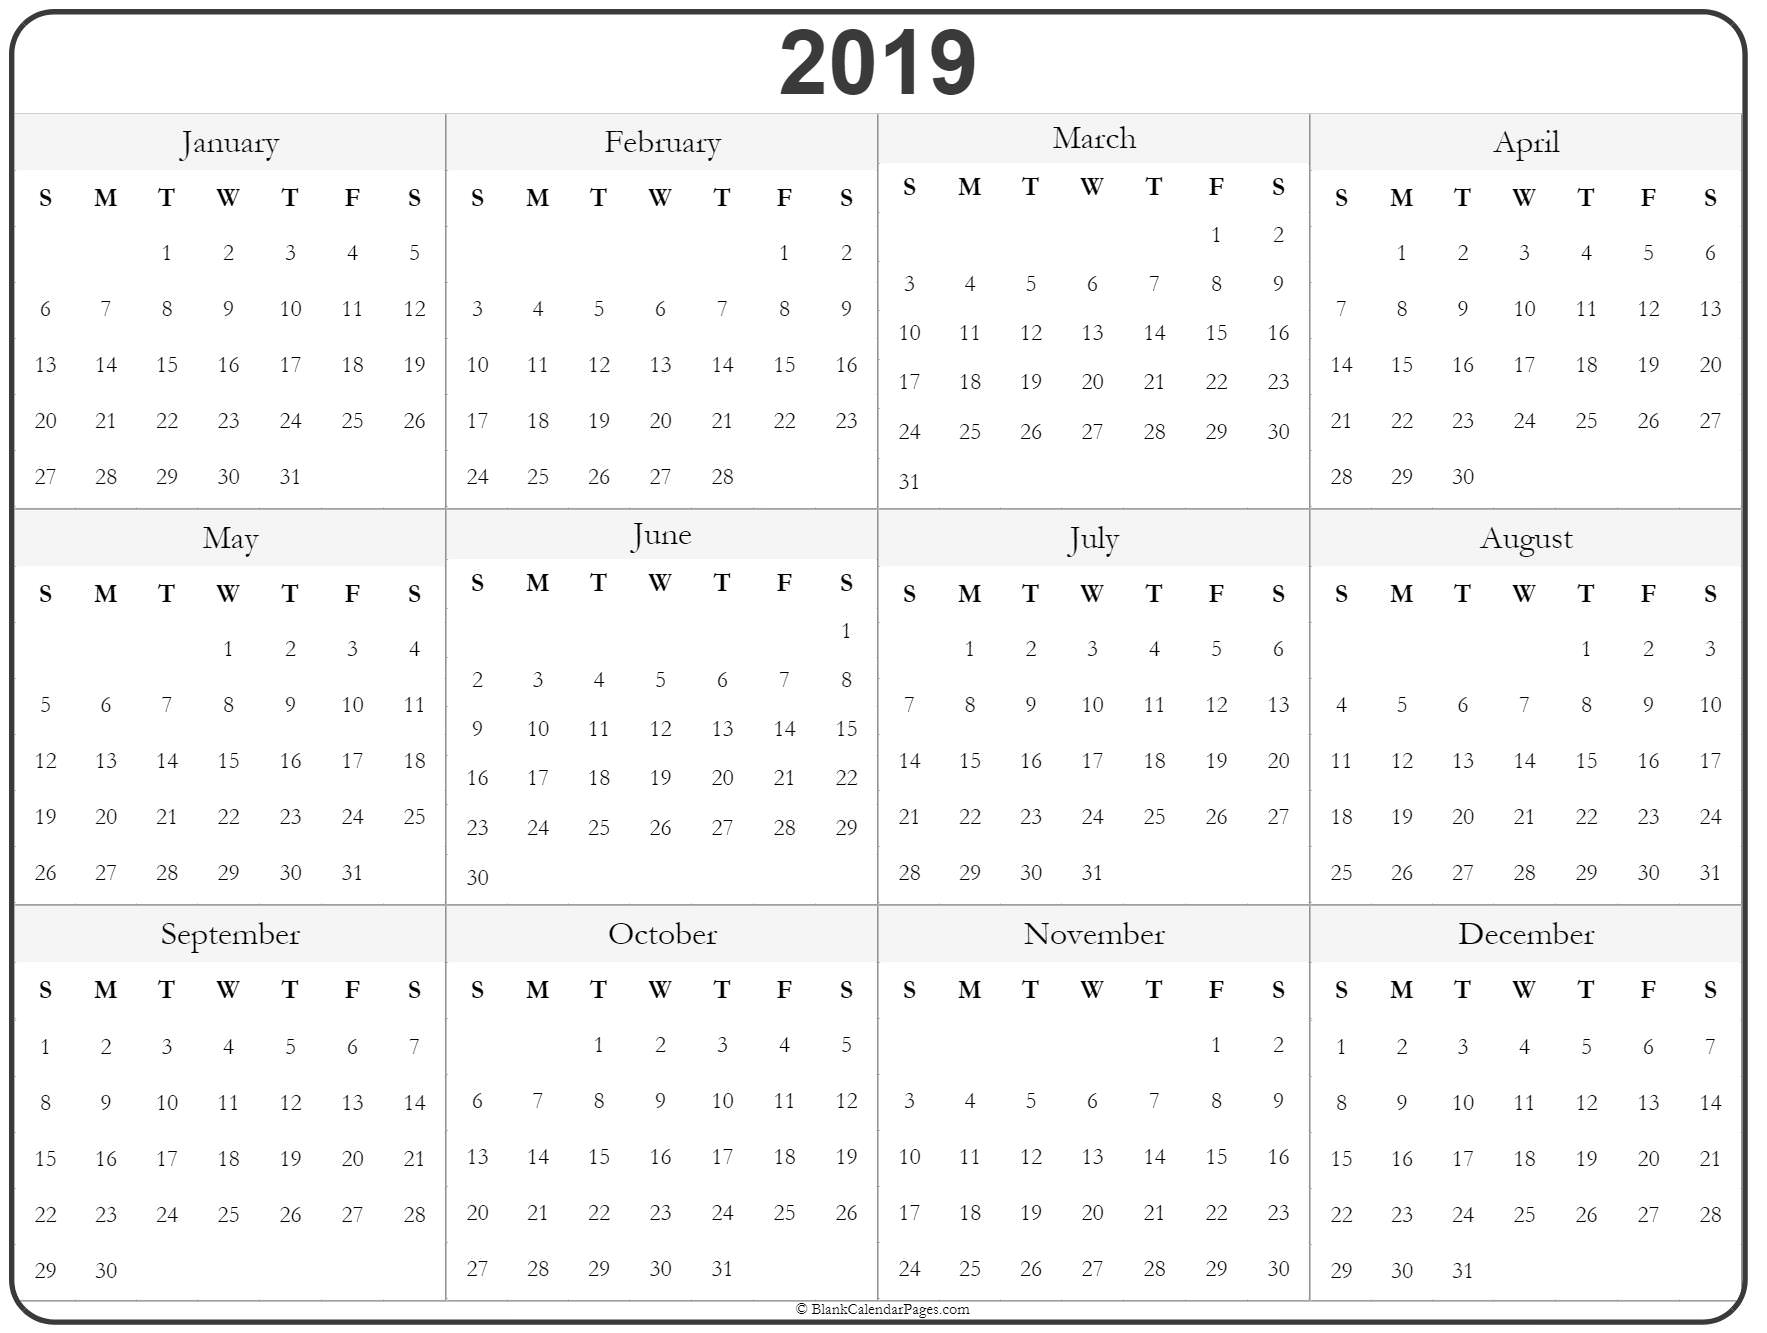 photograph relating to Printable Year Calendar referred to as 2019 calendar year calendar on a yearly basis printable